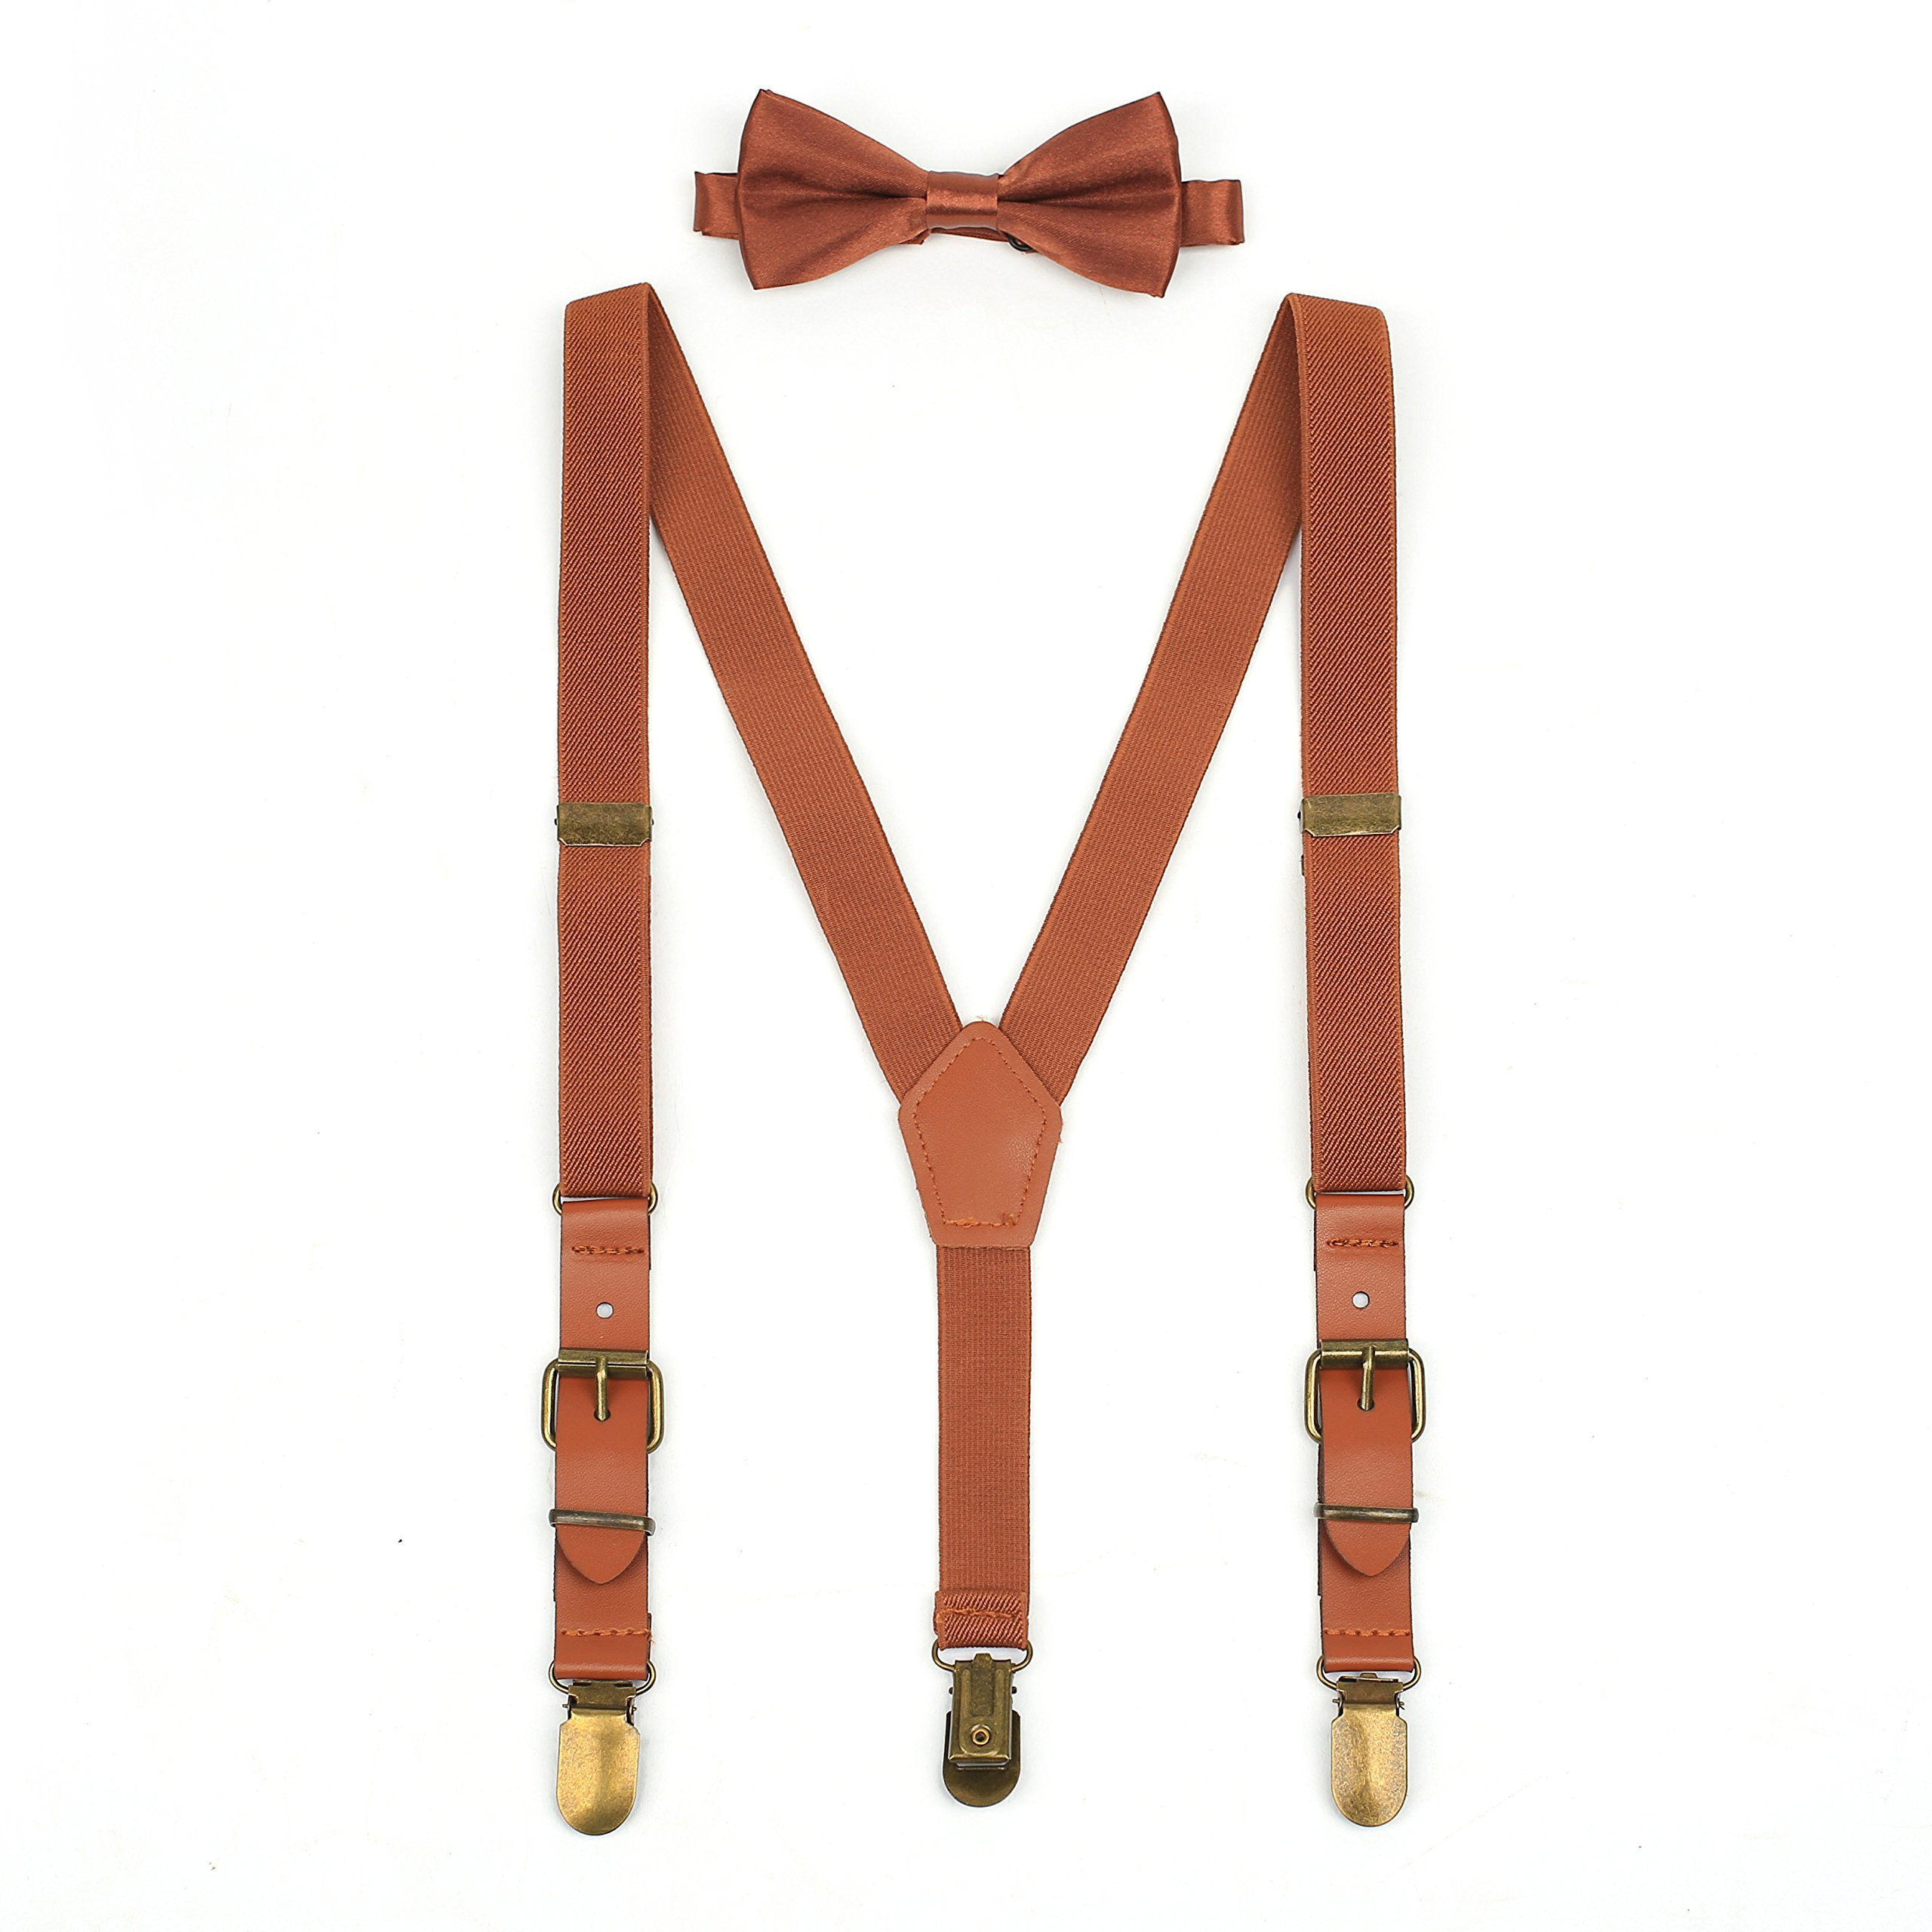 Suspenders & Bowtie Set for Kids and Baby - Y Back Adjustable Strong Clips Synthetic Leather Suspenders